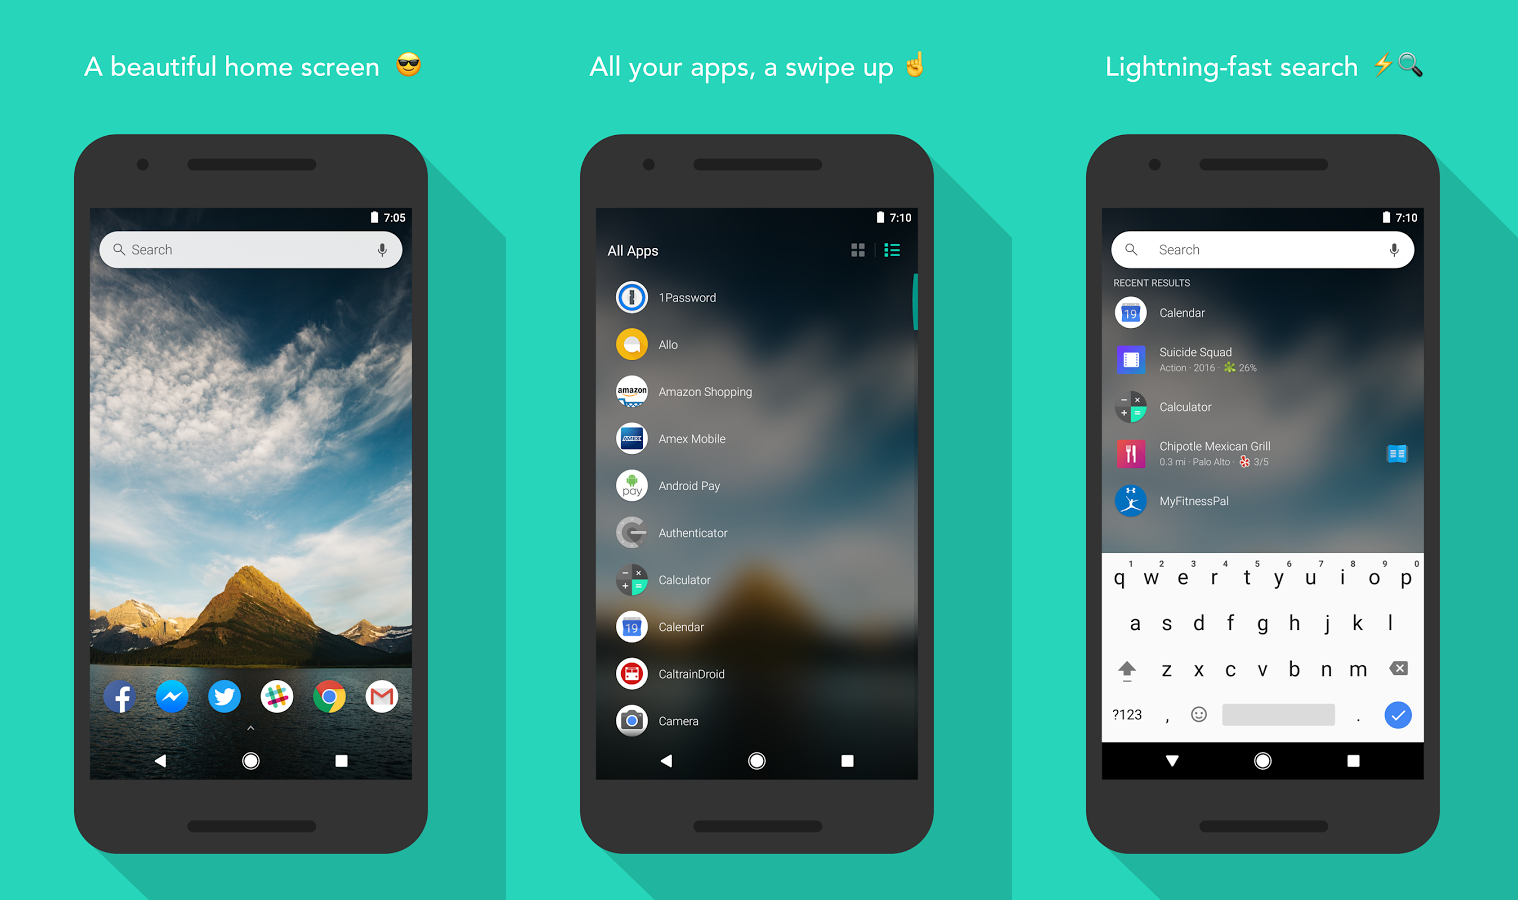 High Quality Evie Launcher Is One Of The Newest Apps On Our List. It Has A Minimalist  Design That Will Remind You Of The Stock Android Launcher.